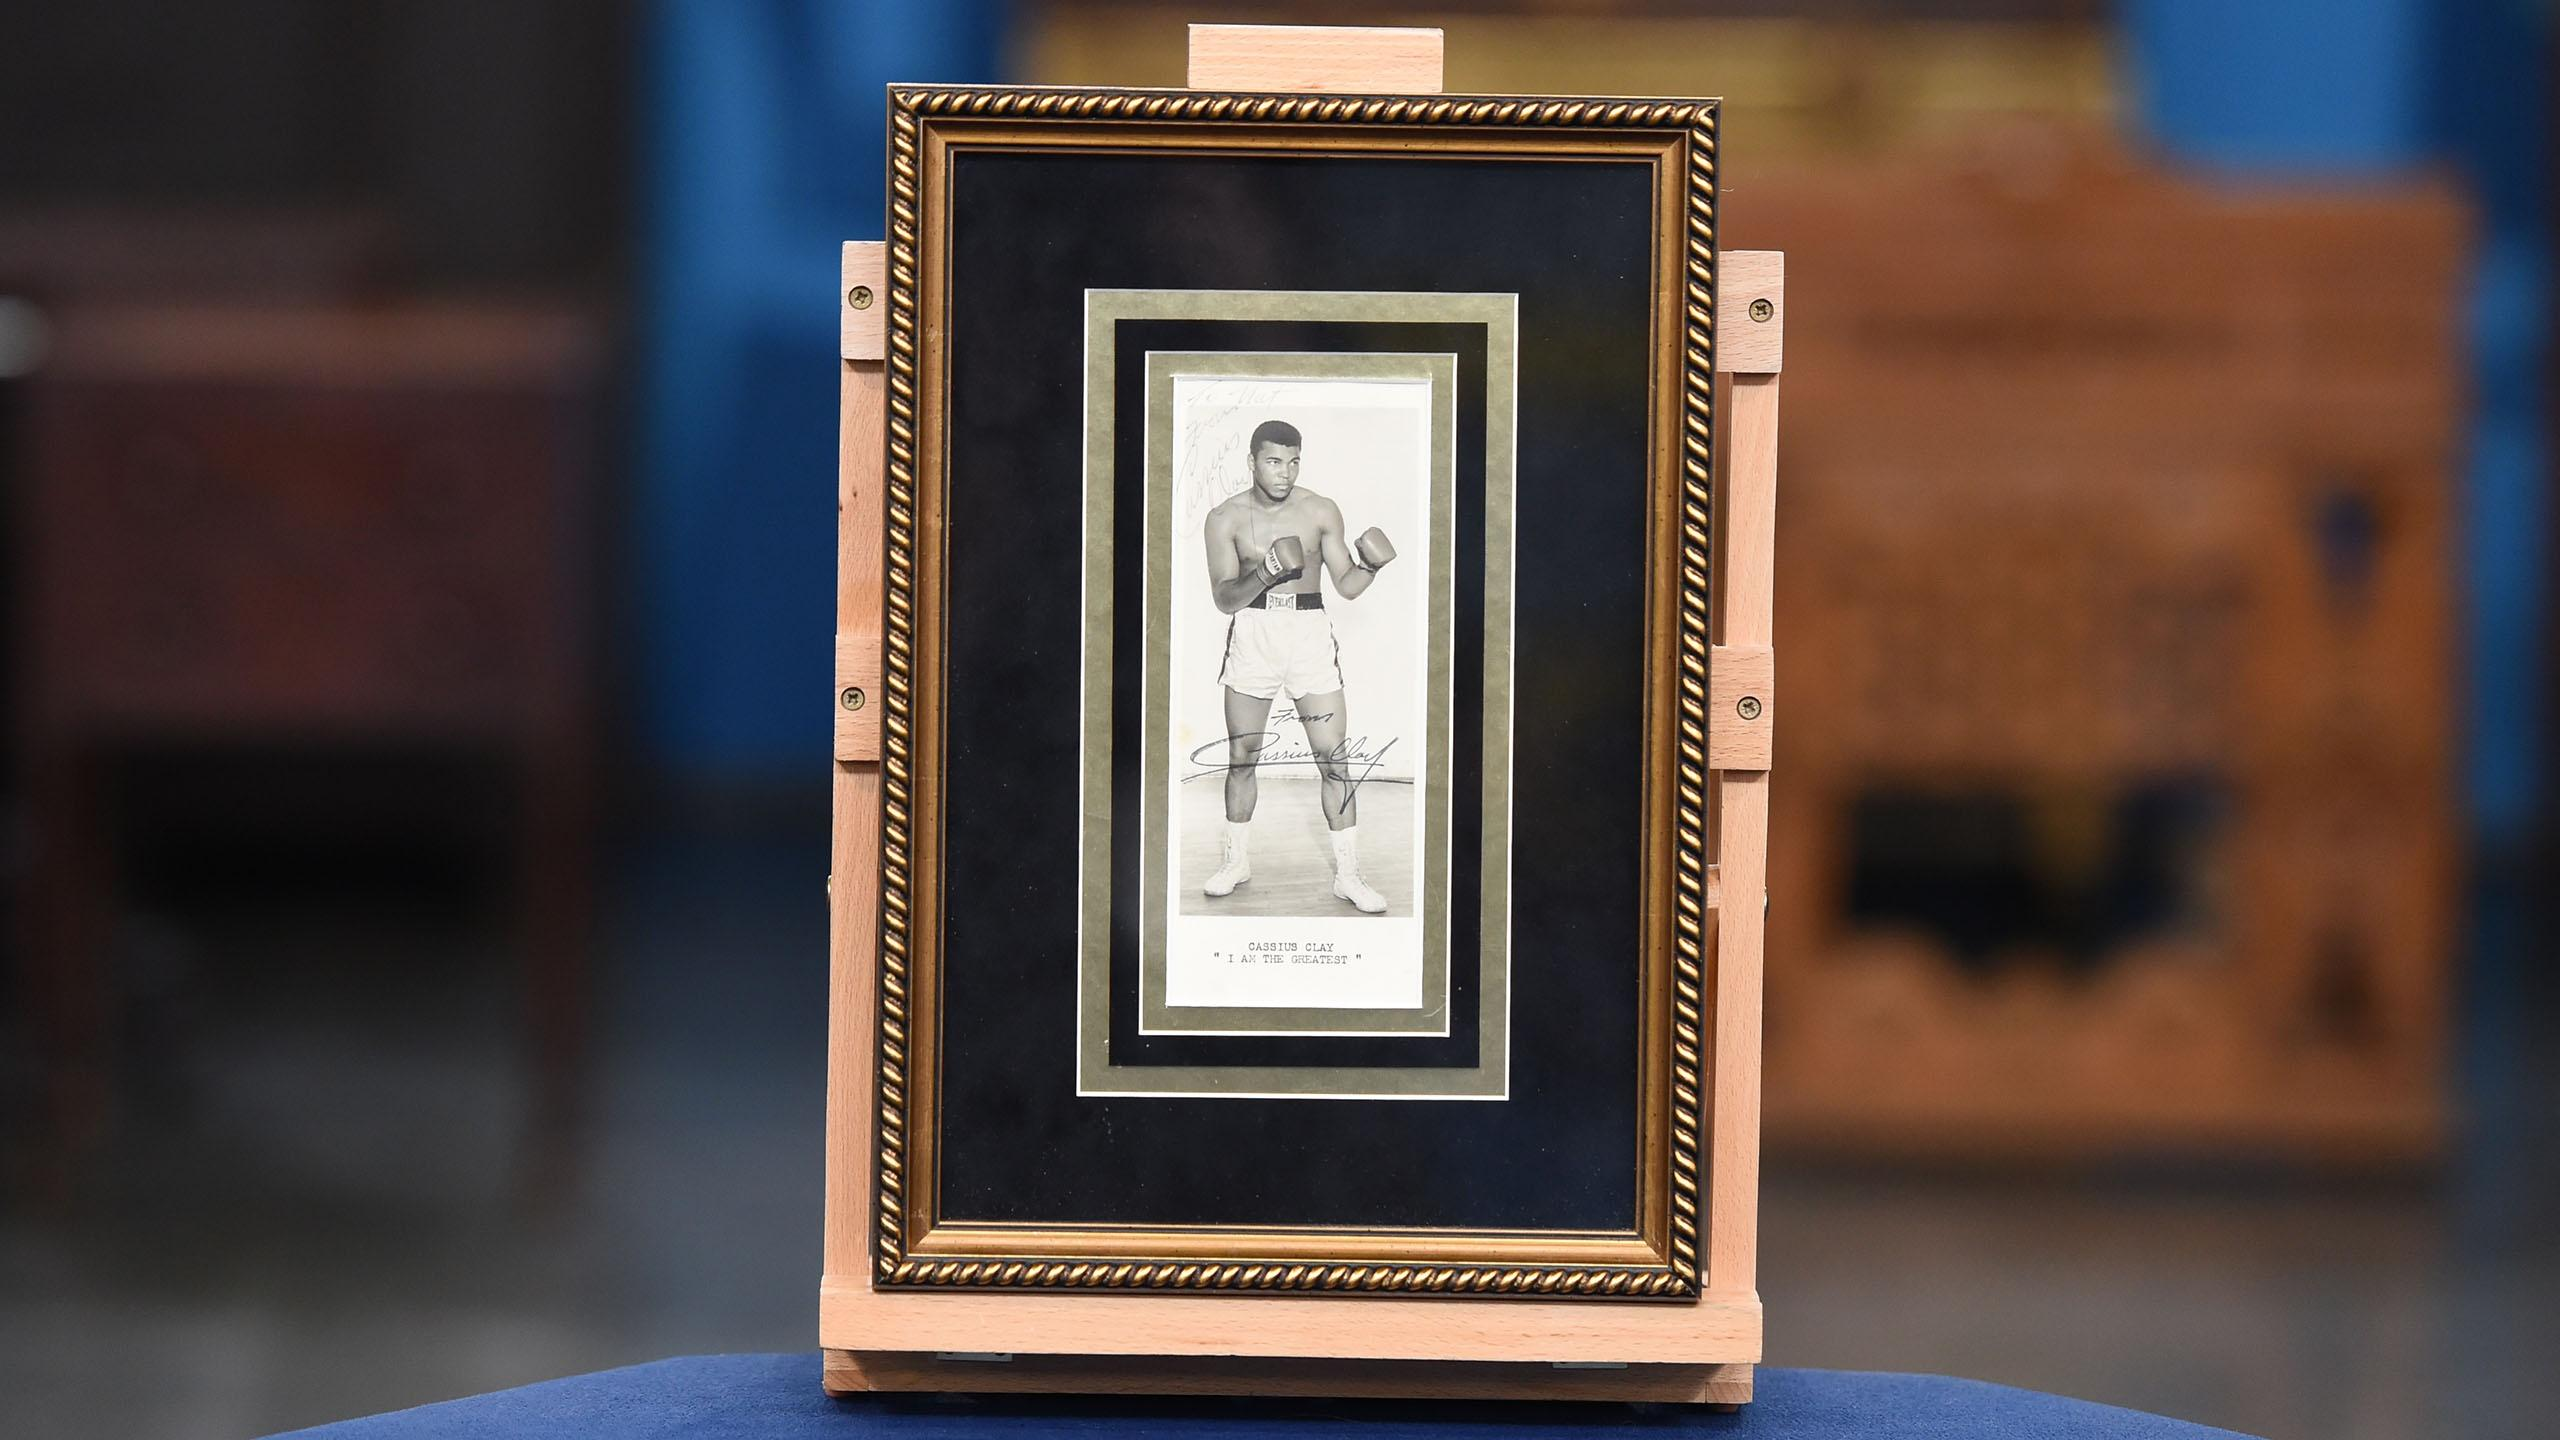 S21 Ep15: Appraisal: 1964 Cassius Clay Twice-signed Promotio